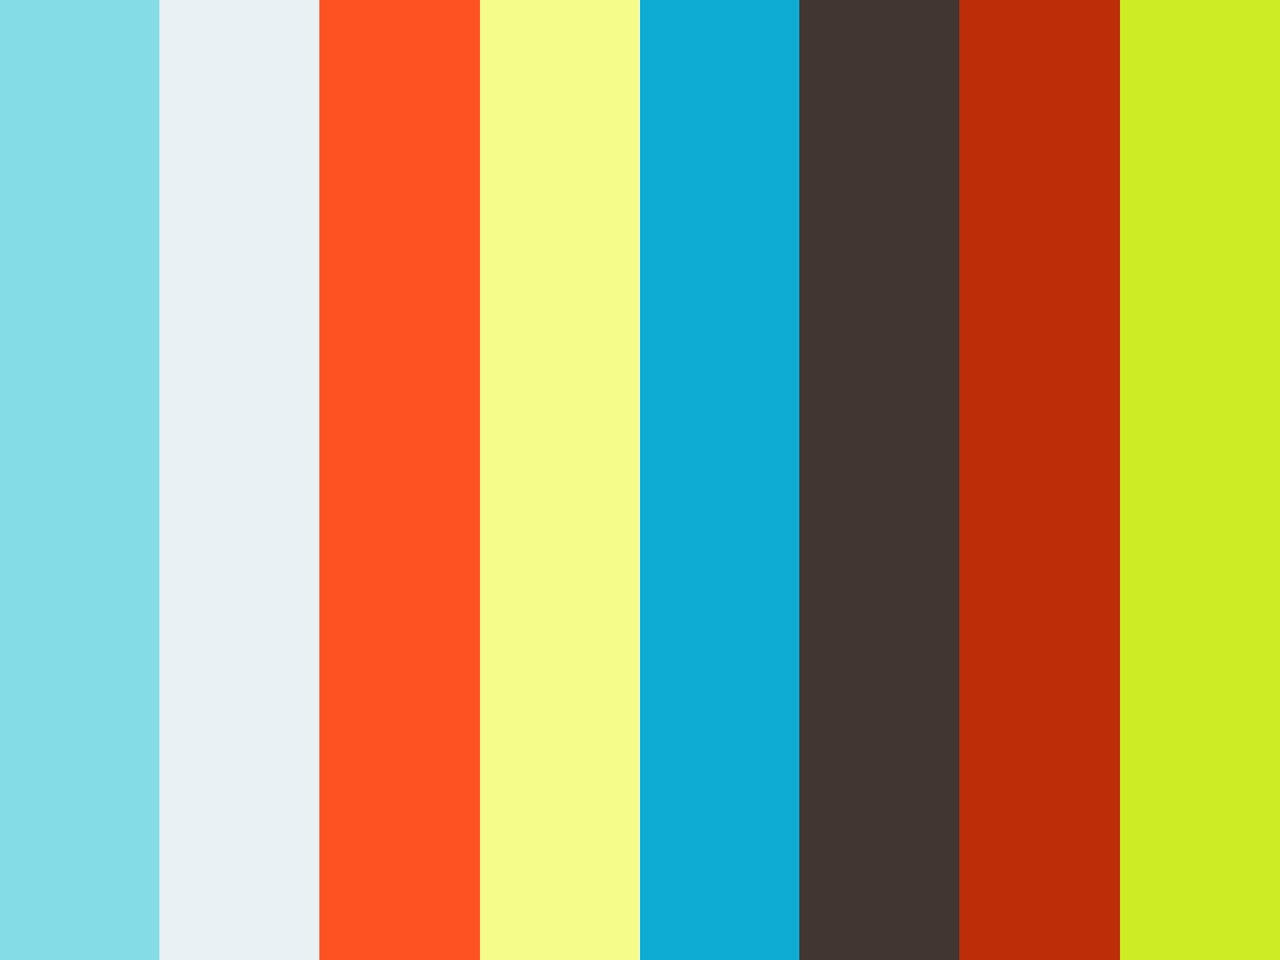 Healthcare Reform Series - Webinar 5